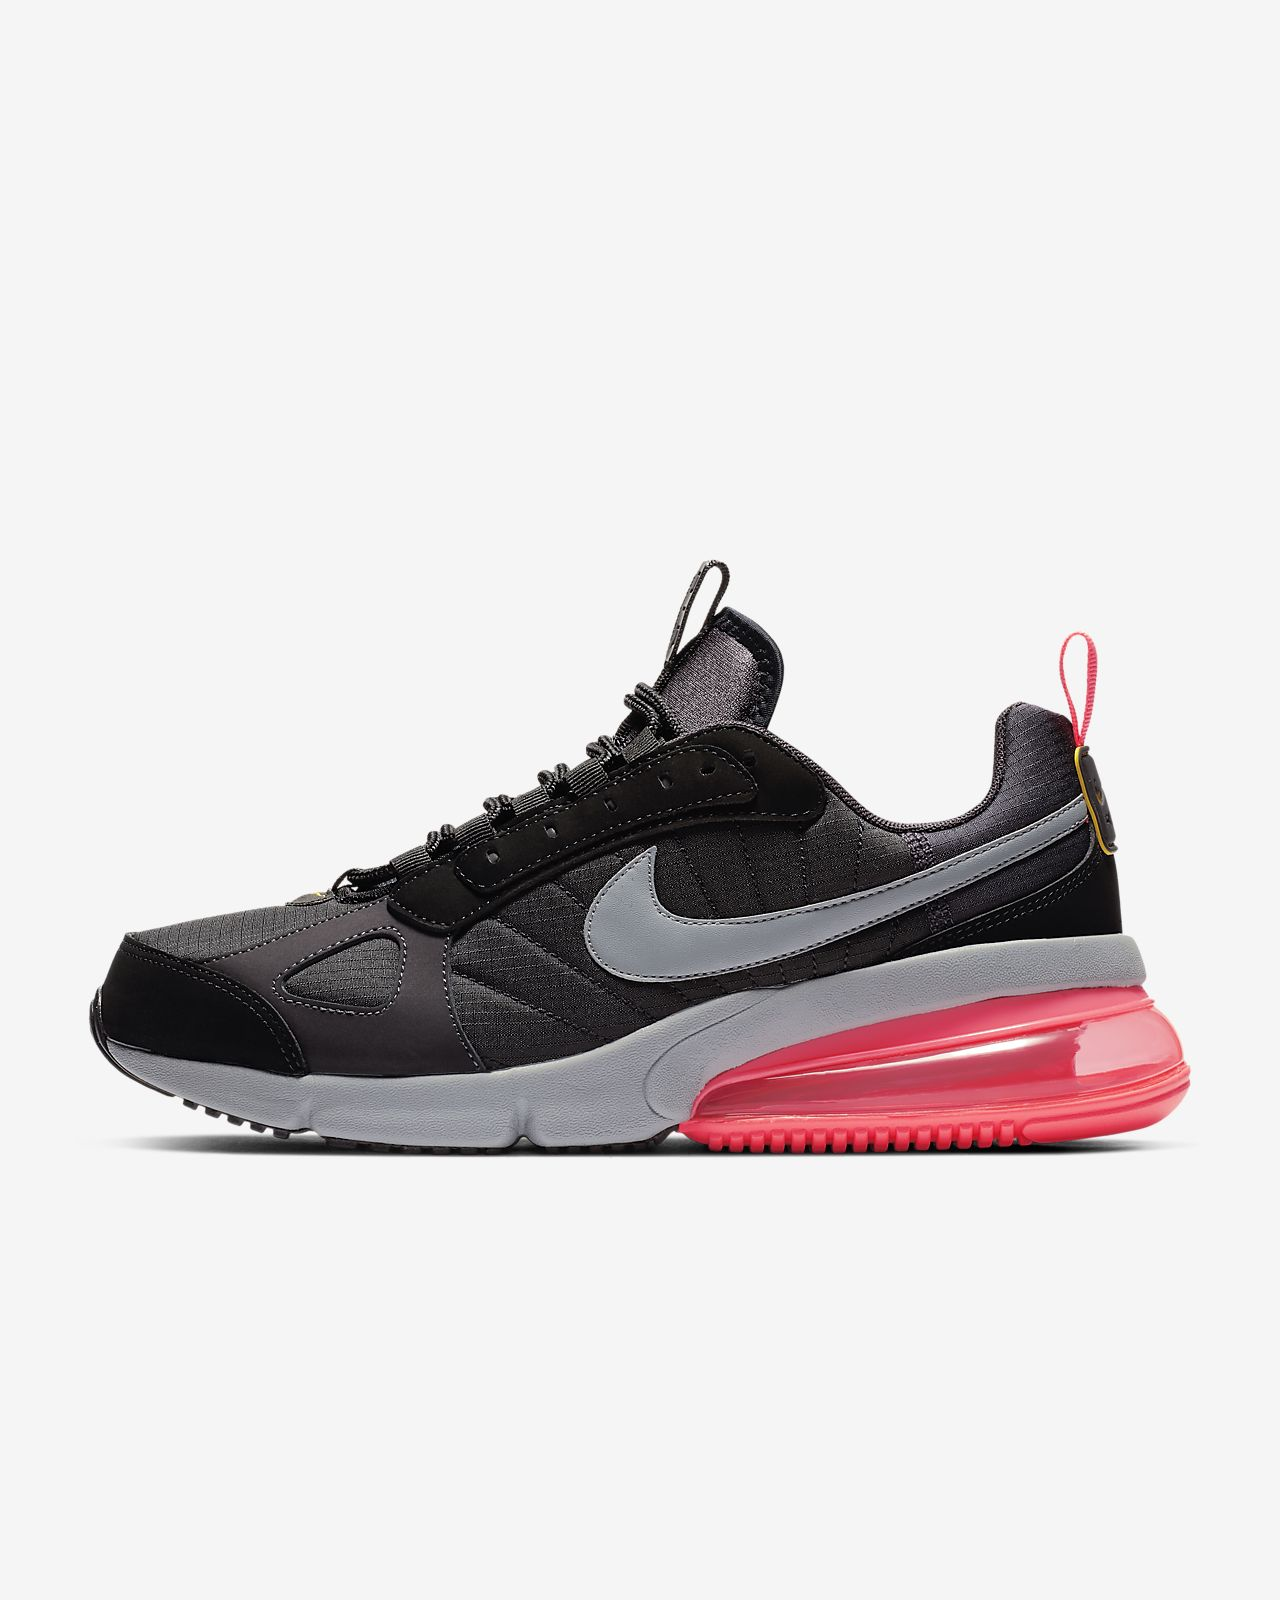 finest selection 98c29 07723 ... Chaussure Nike Air Max 270 Futura pour Homme